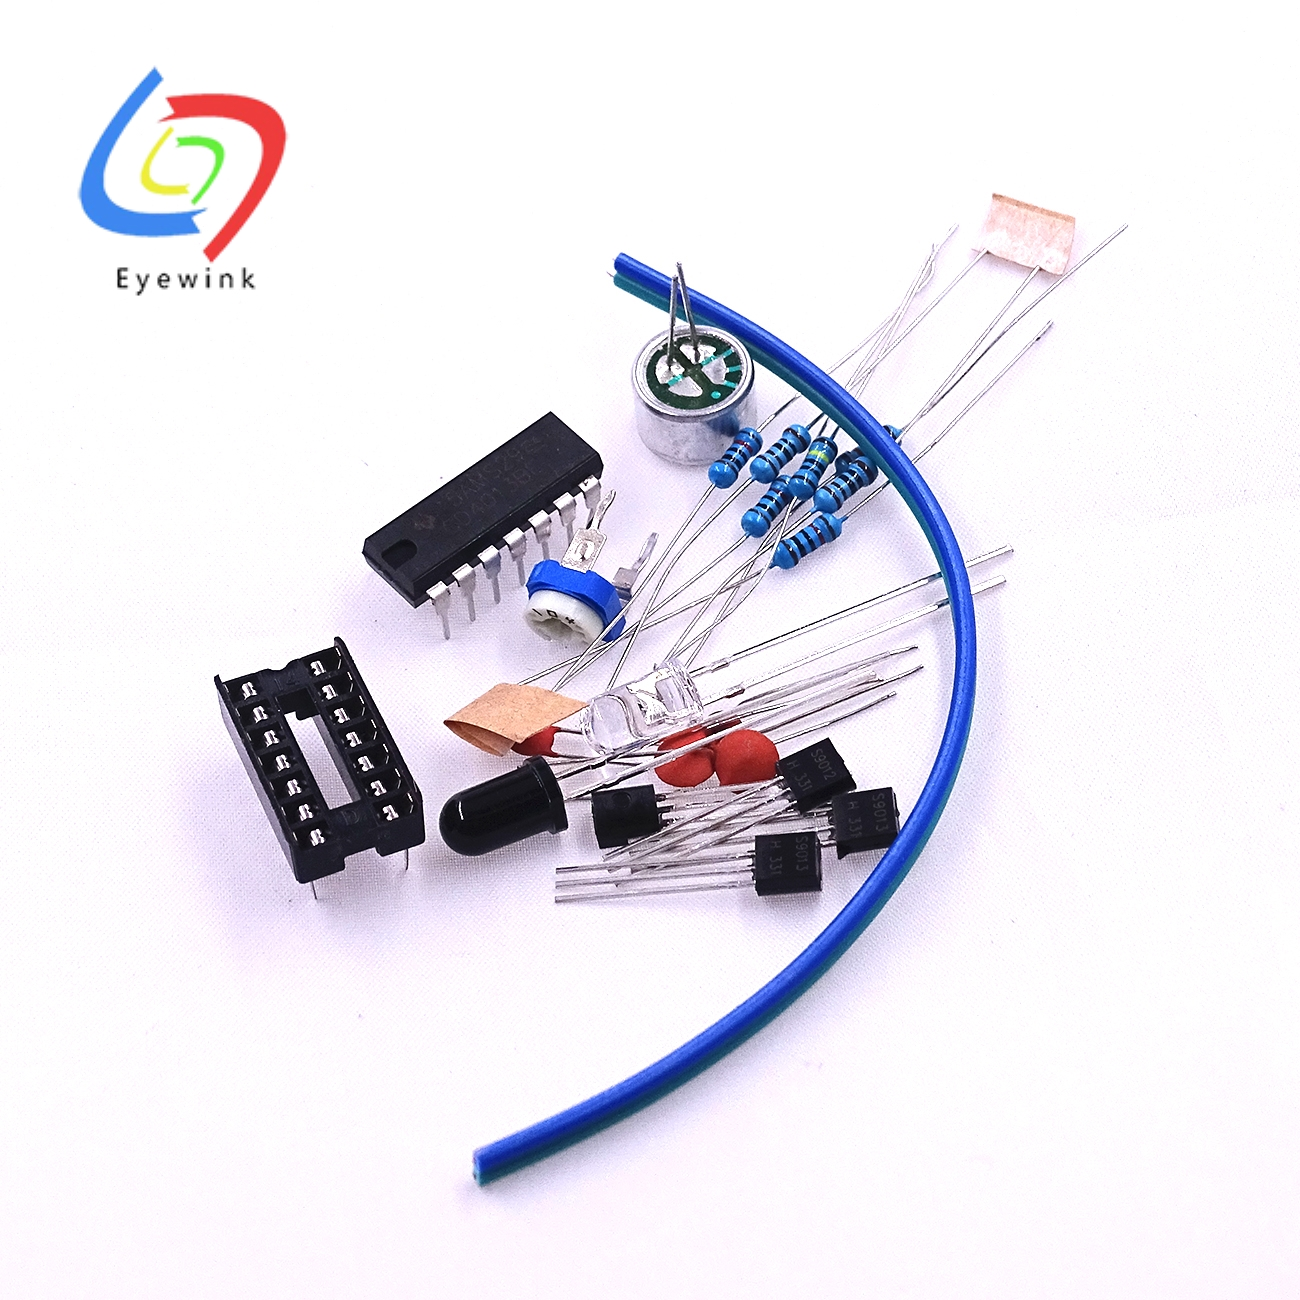 Buy Eyewink Analog Electronic Candle Module Diy Kit Circuit Simulation Lit Blow Control Suite For Training Parts From